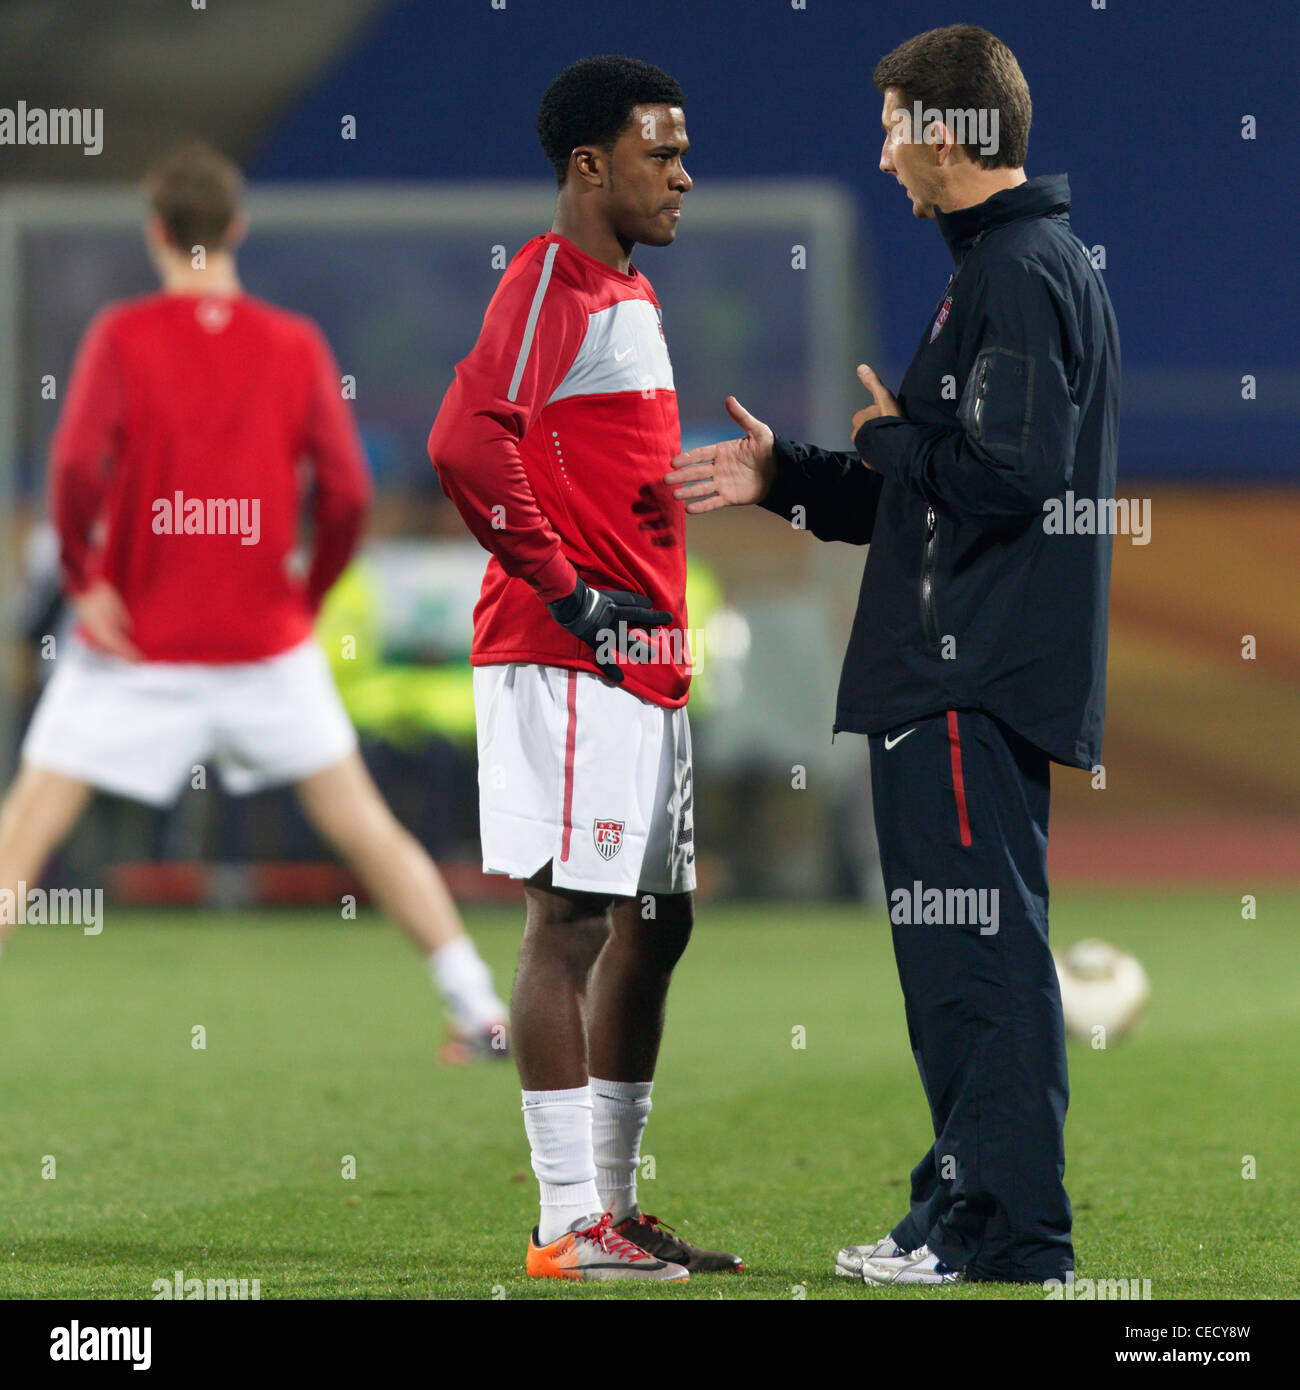 Robbie Findley of the United States (L) receives instruction before a 2010 FIFA World Cup round of 16 match against - Stock Image